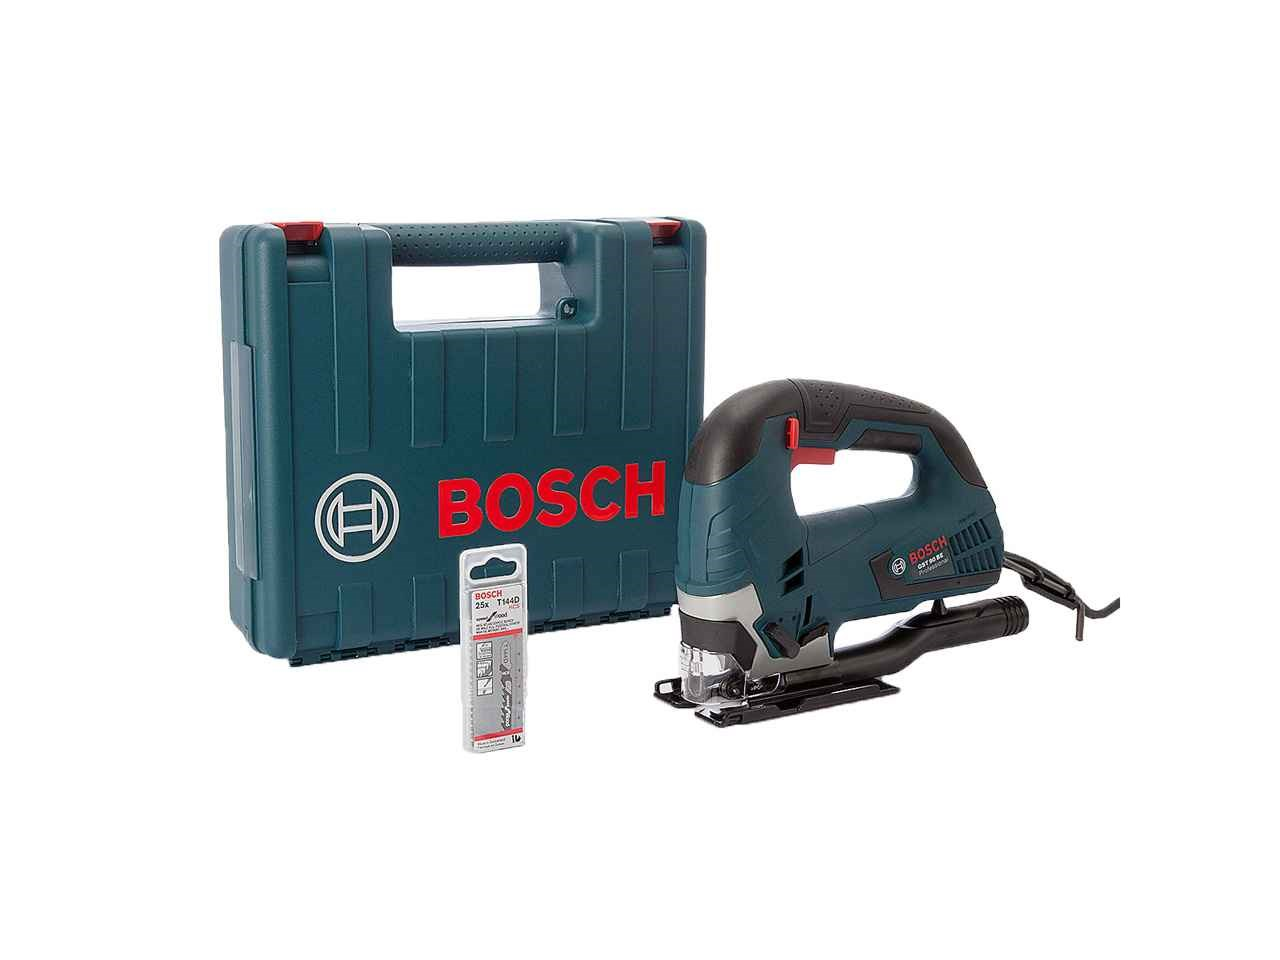 Bosch gst 90 be 1bl 230v 650w bow handle jigsaw with 25 x blades greentooth Gallery